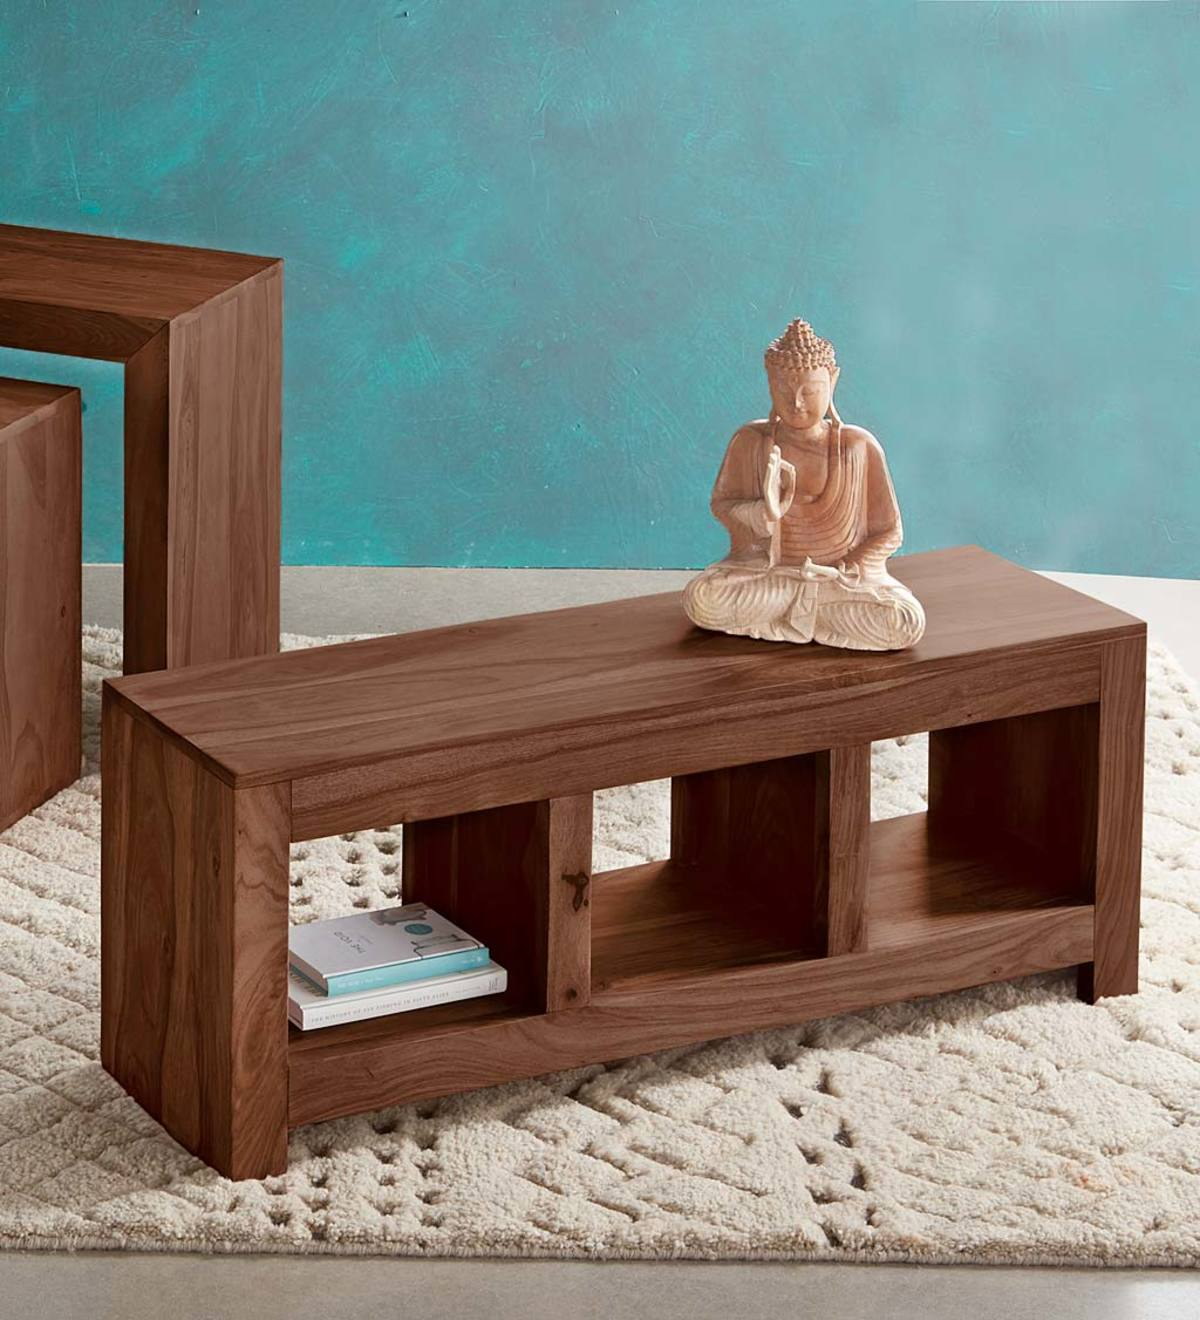 Sheesham Wood Multifunction Table/Bench